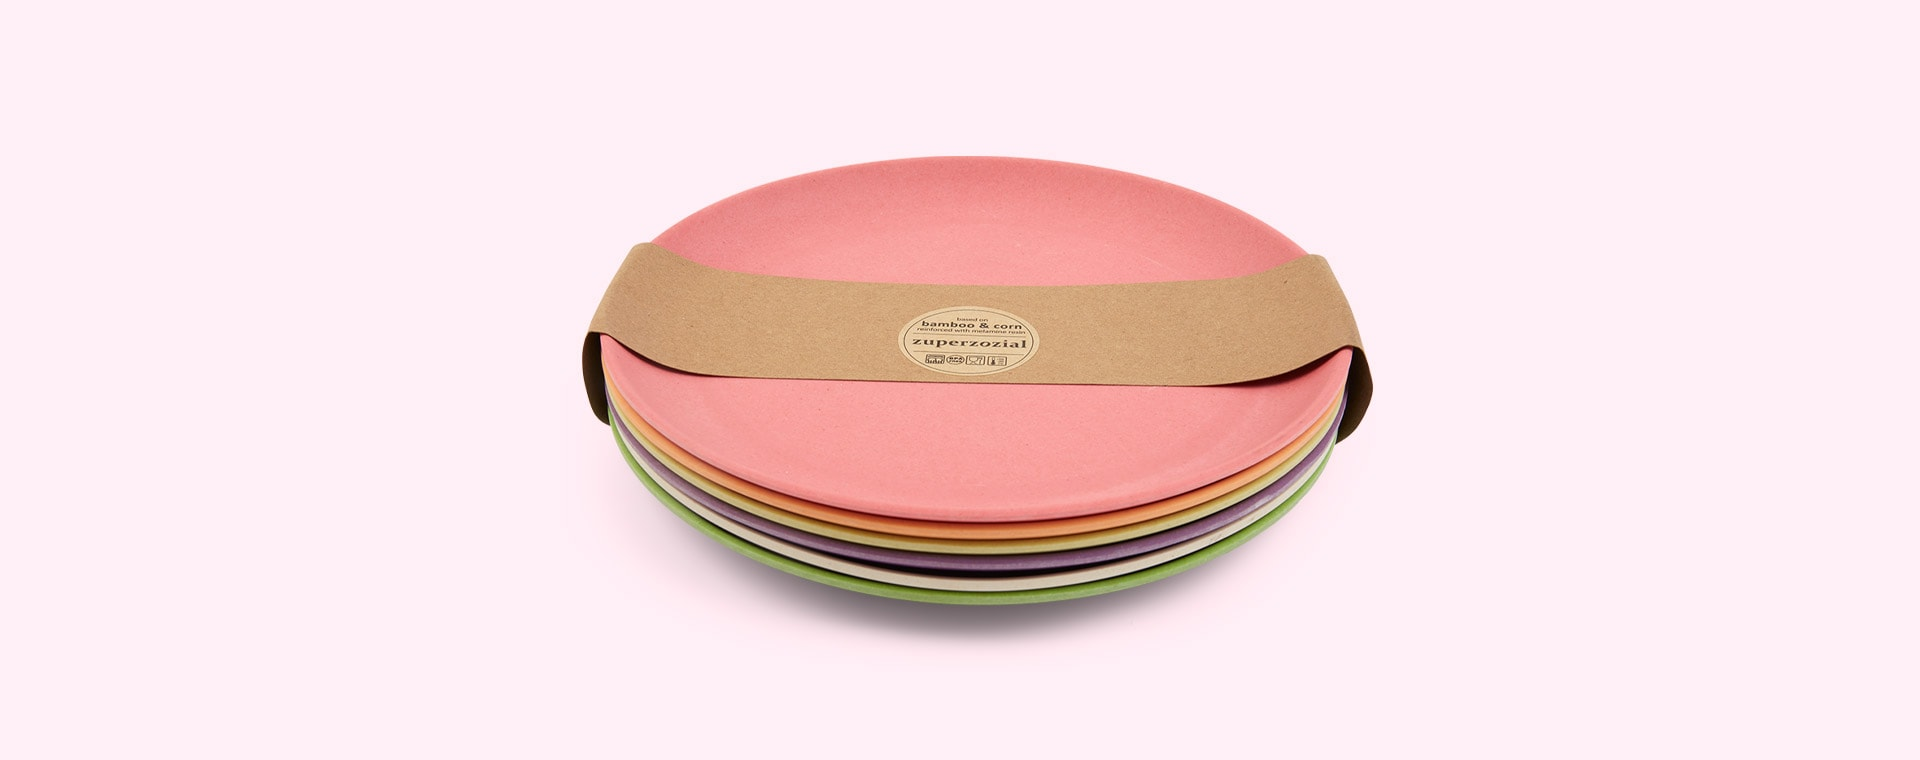 Rainbow Zuperzozial Small Plates Set Of 6